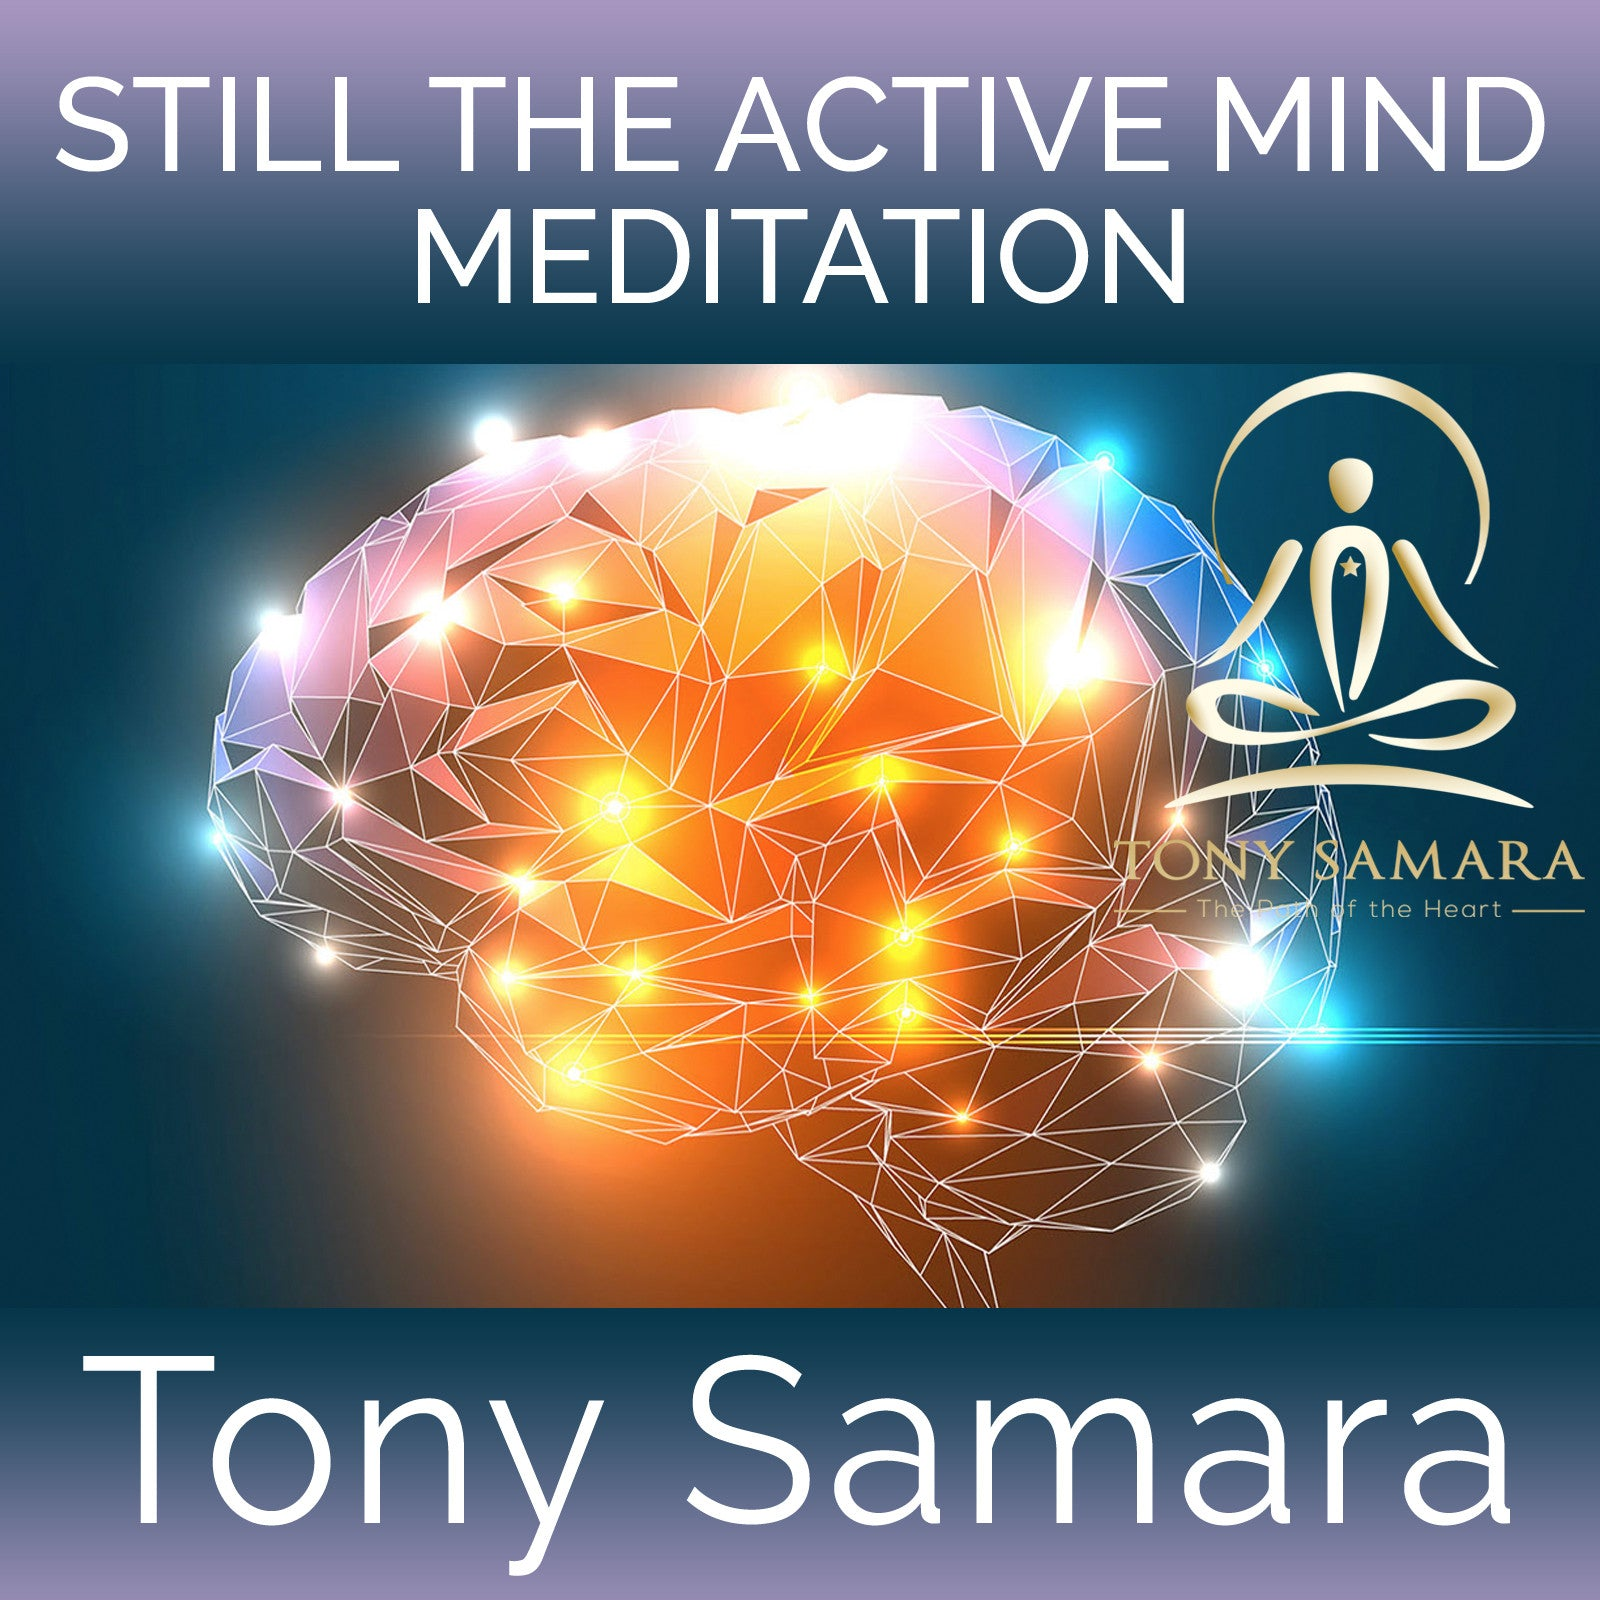 Still the Active Mind Meditation (MP3 Audio Download) - Tony Samara Meditation